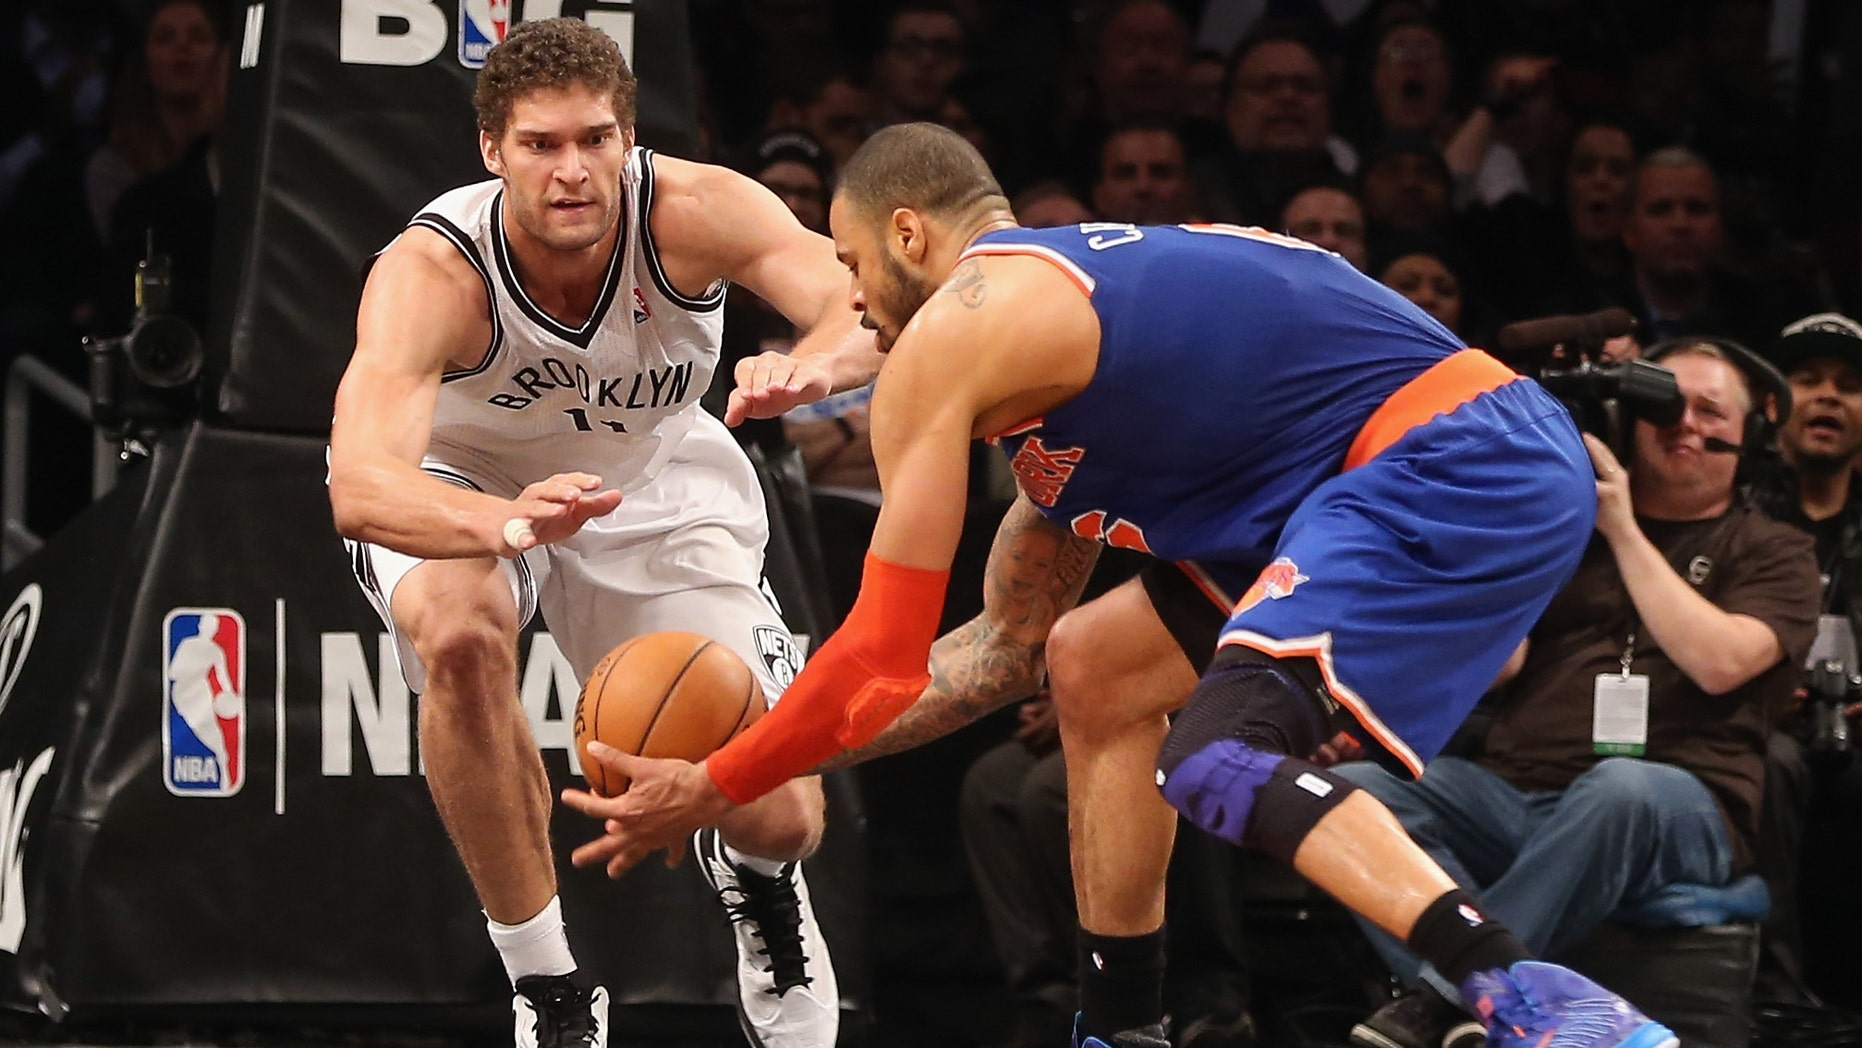 Brook Lopez #11 of the Brooklyn Nets and Tyson Chandler #6 of the New York Knicks battle for a loose ball at the Barclays Center on November 26, 2012 in the Brooklyn borough of New York City.(Photo by Bruce Bennett/Getty Images)